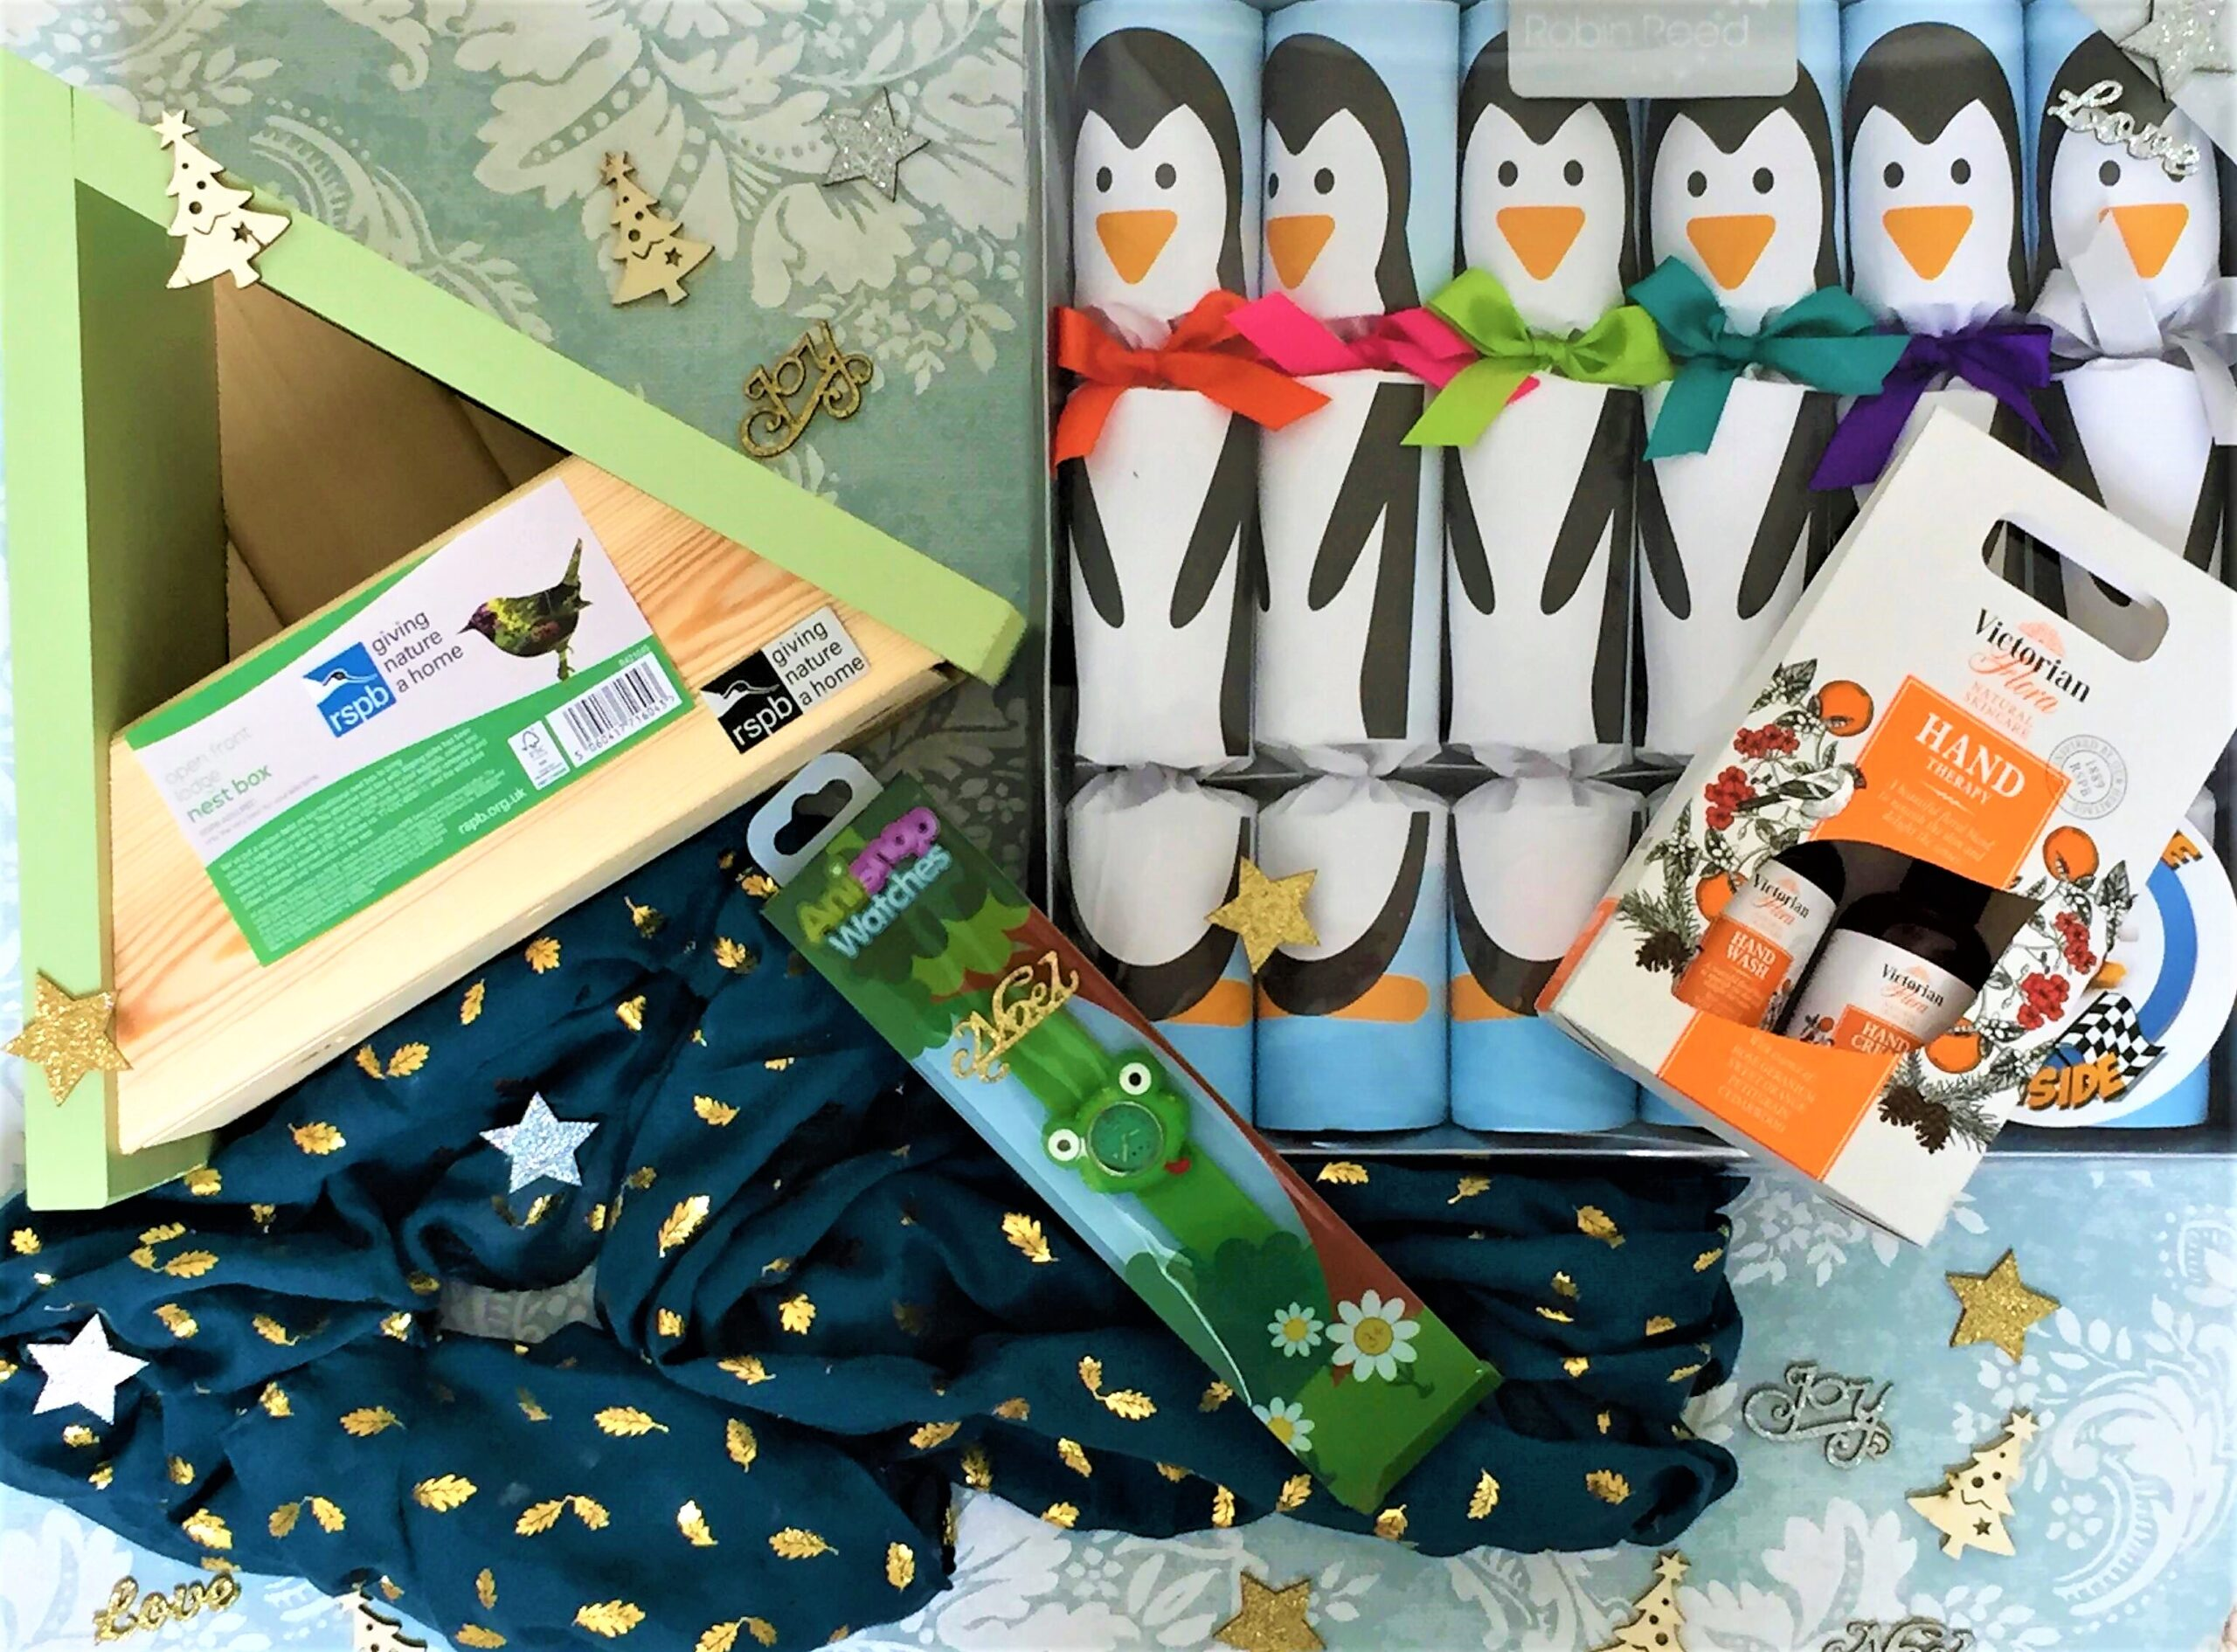 a selection of Christmas gifts and crackers